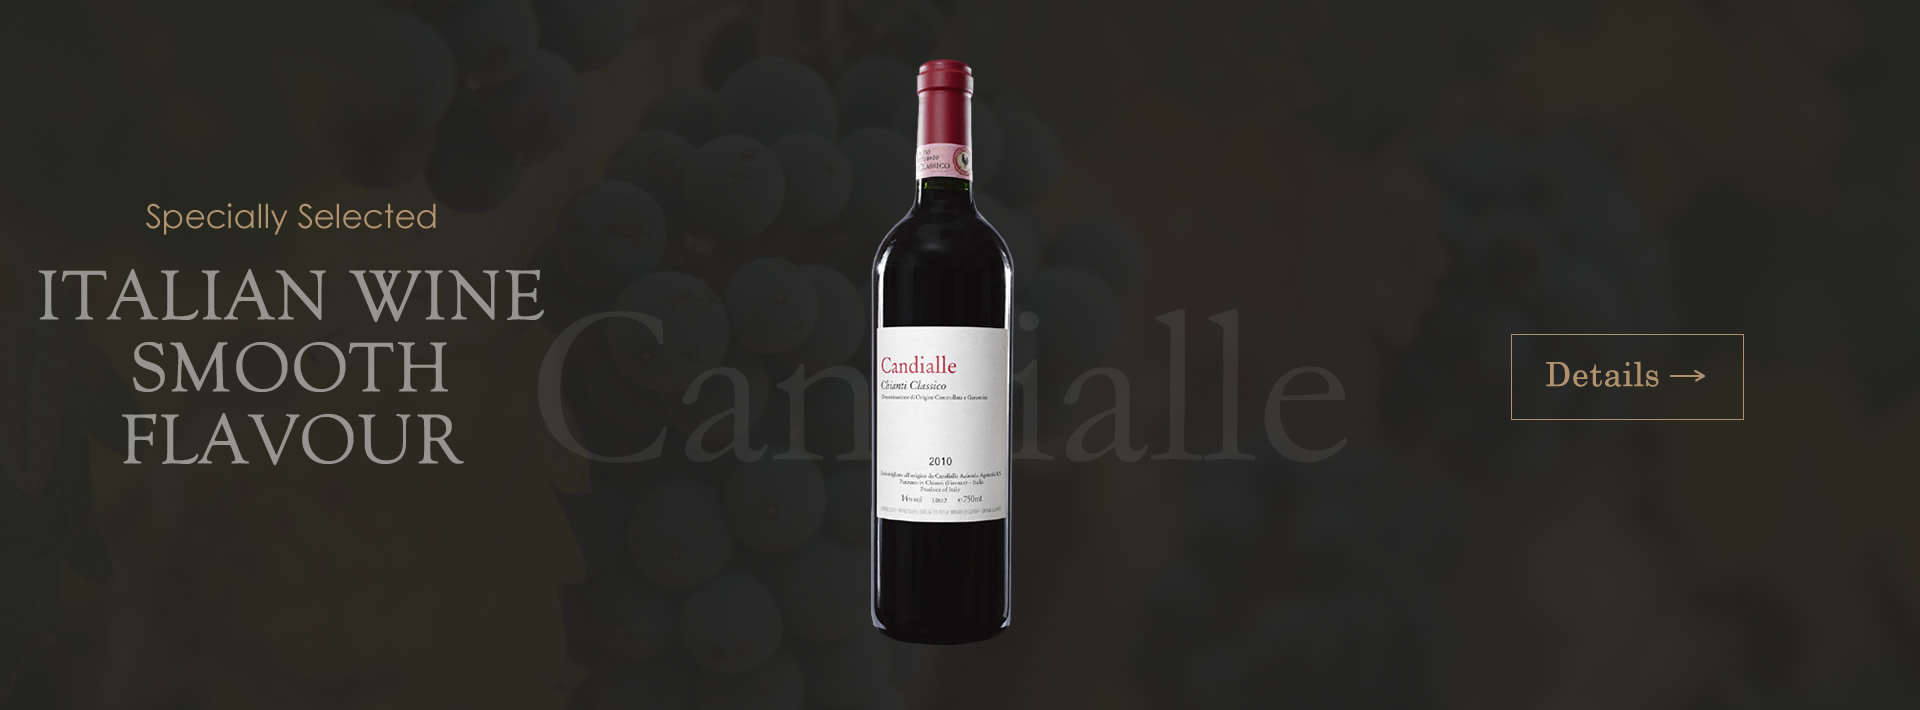 Candaille Wine